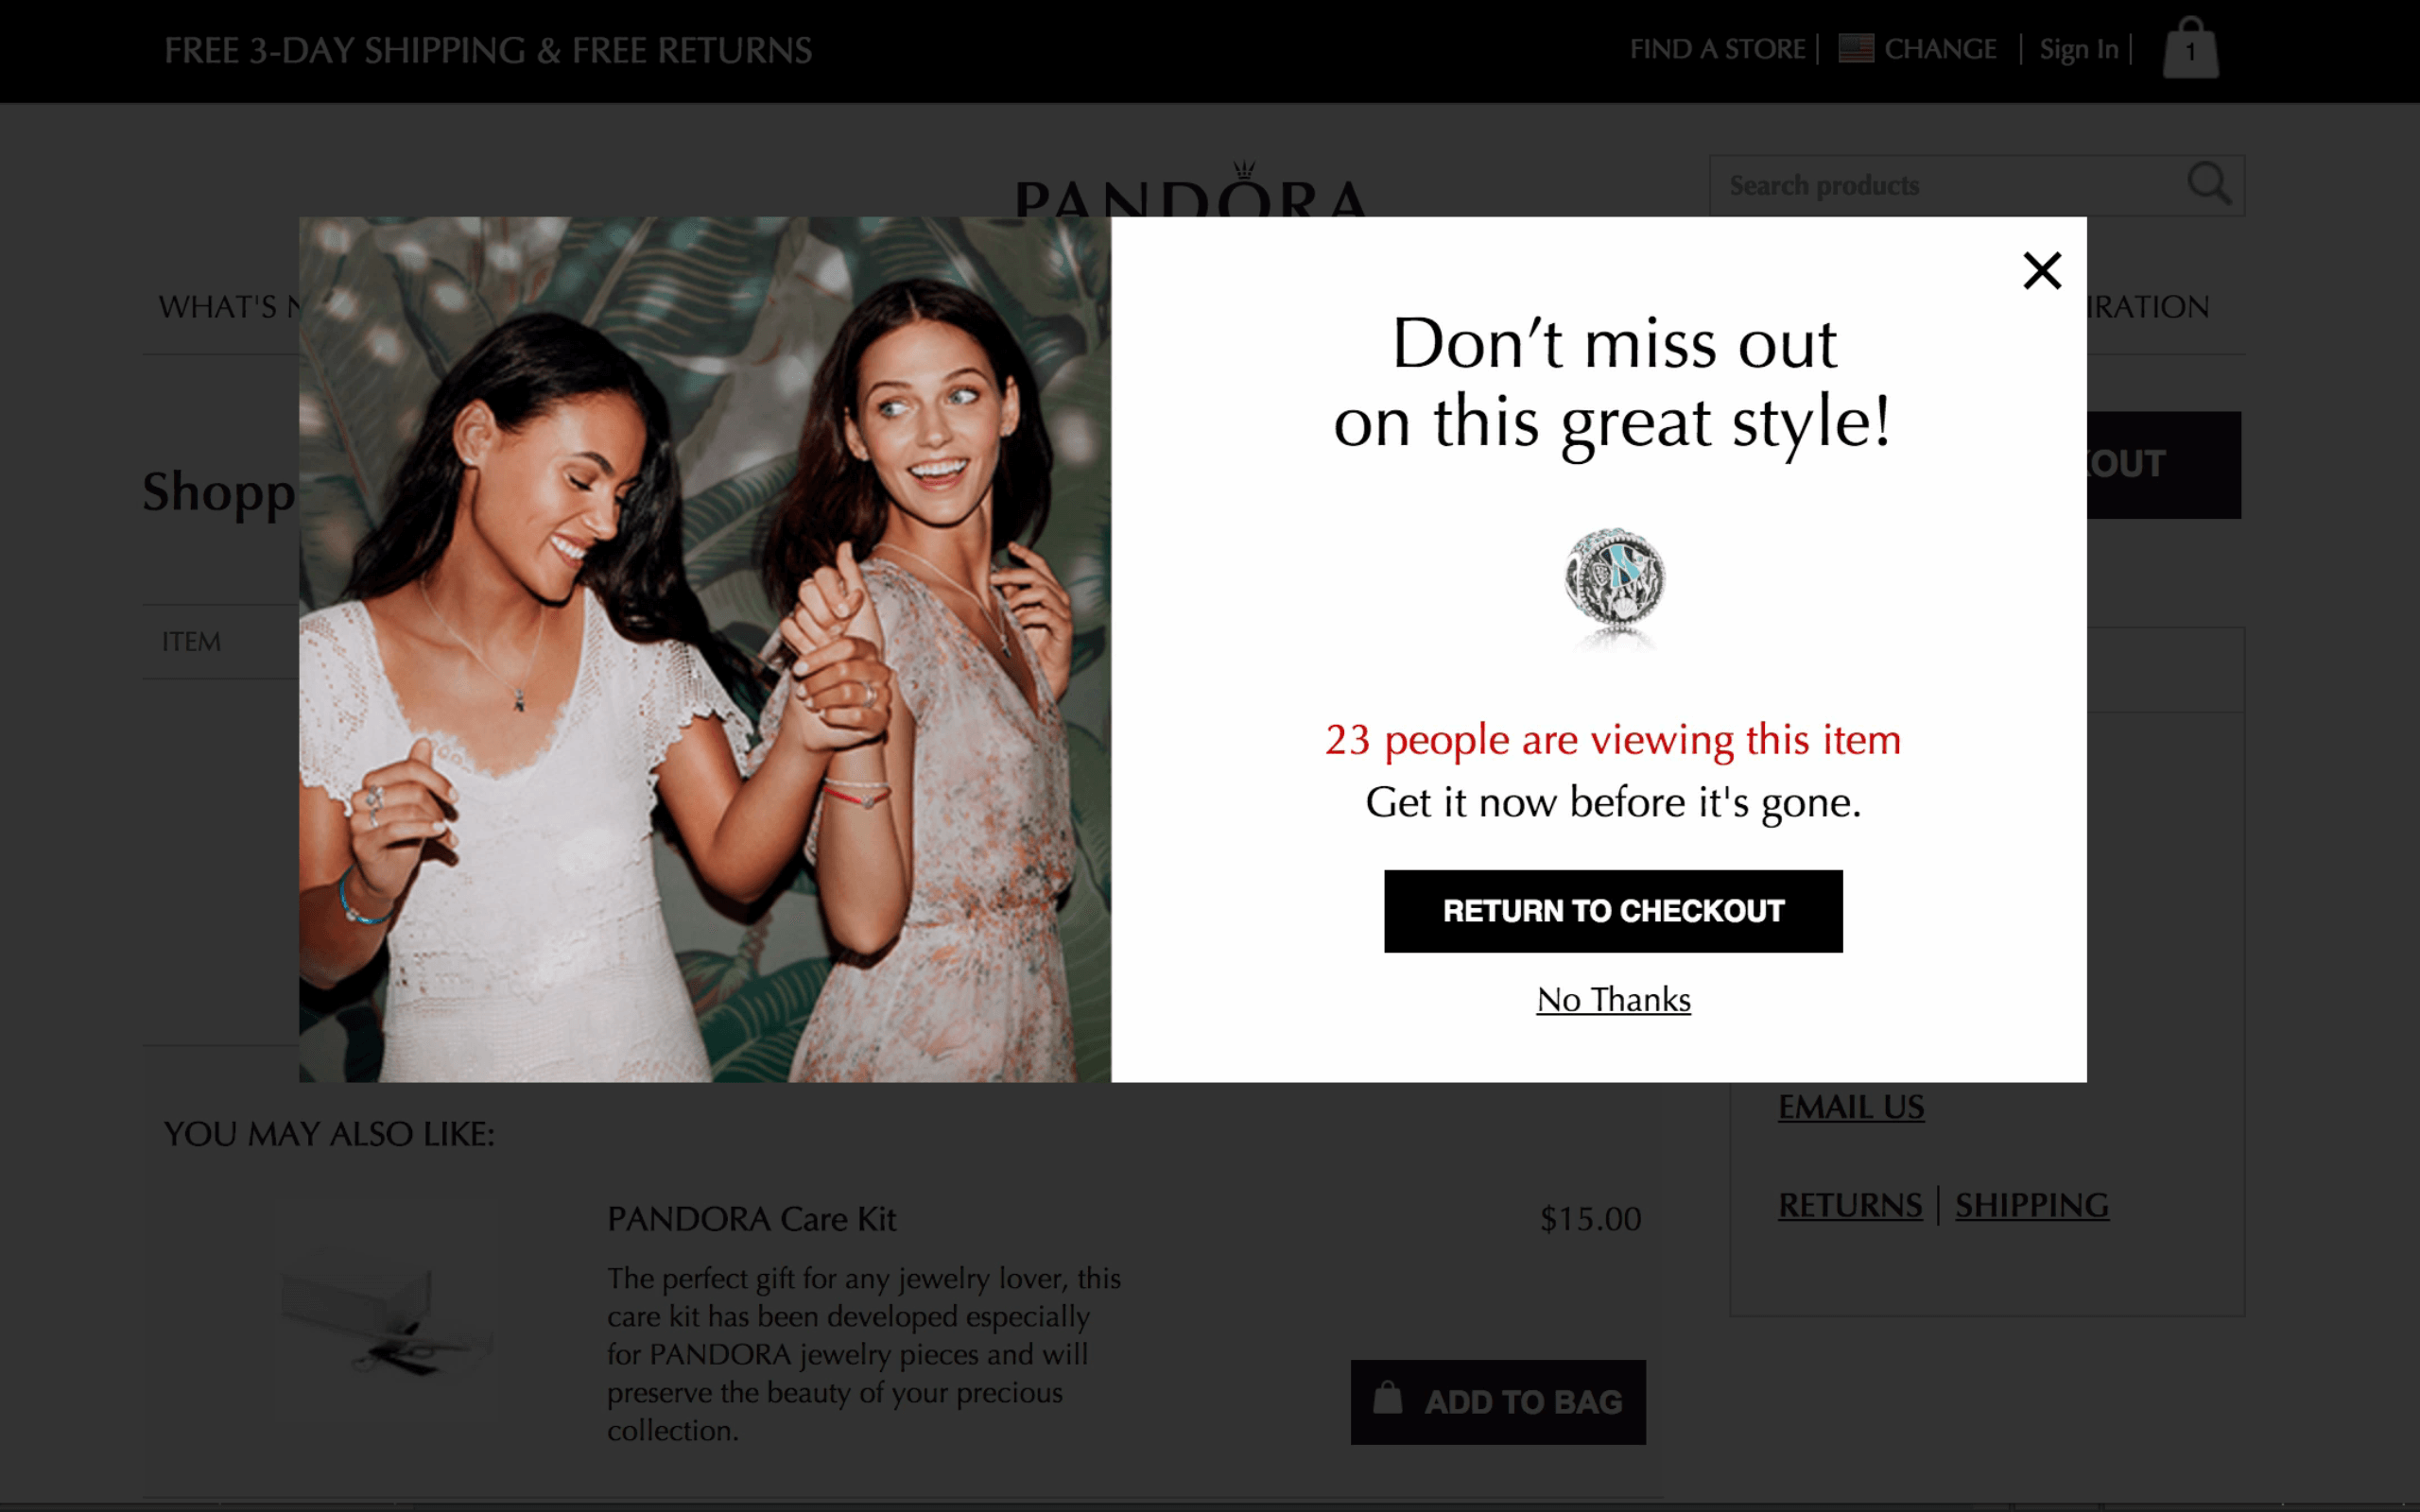 Pandora urgency messaging to reduce cart abandonment